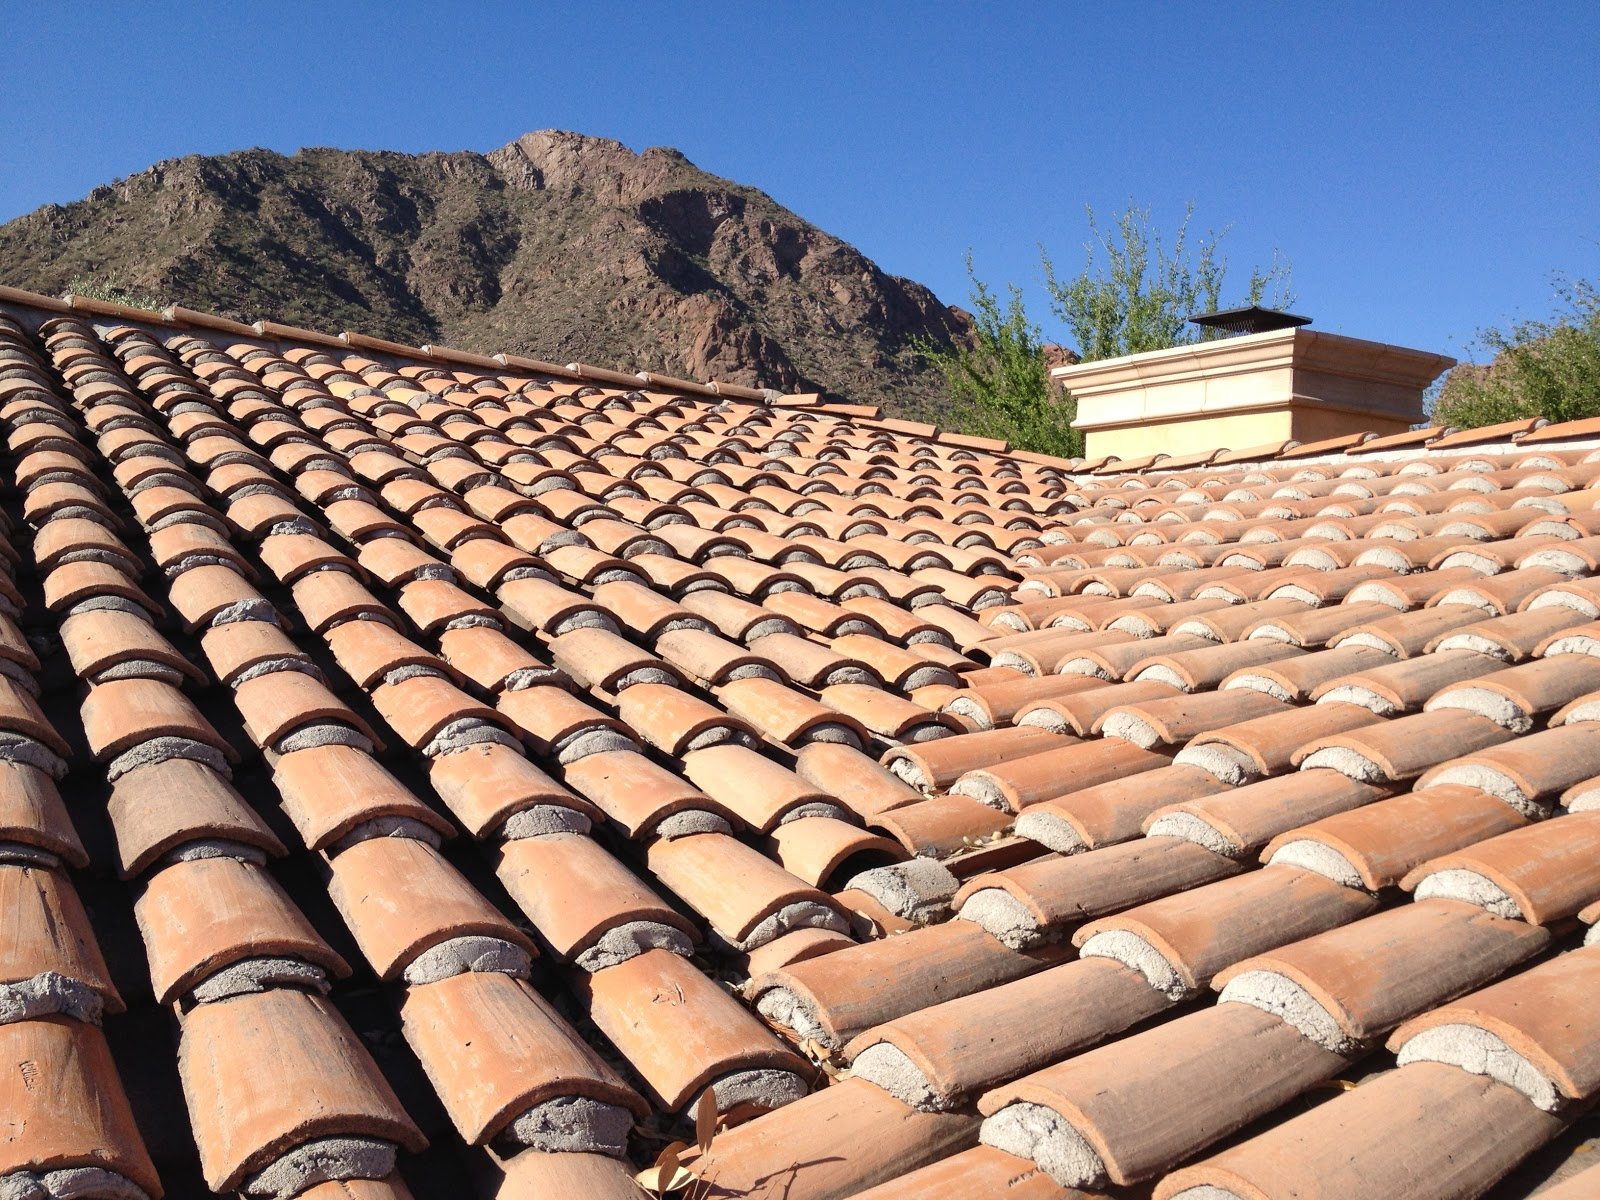 247 Roofing Service Near Me